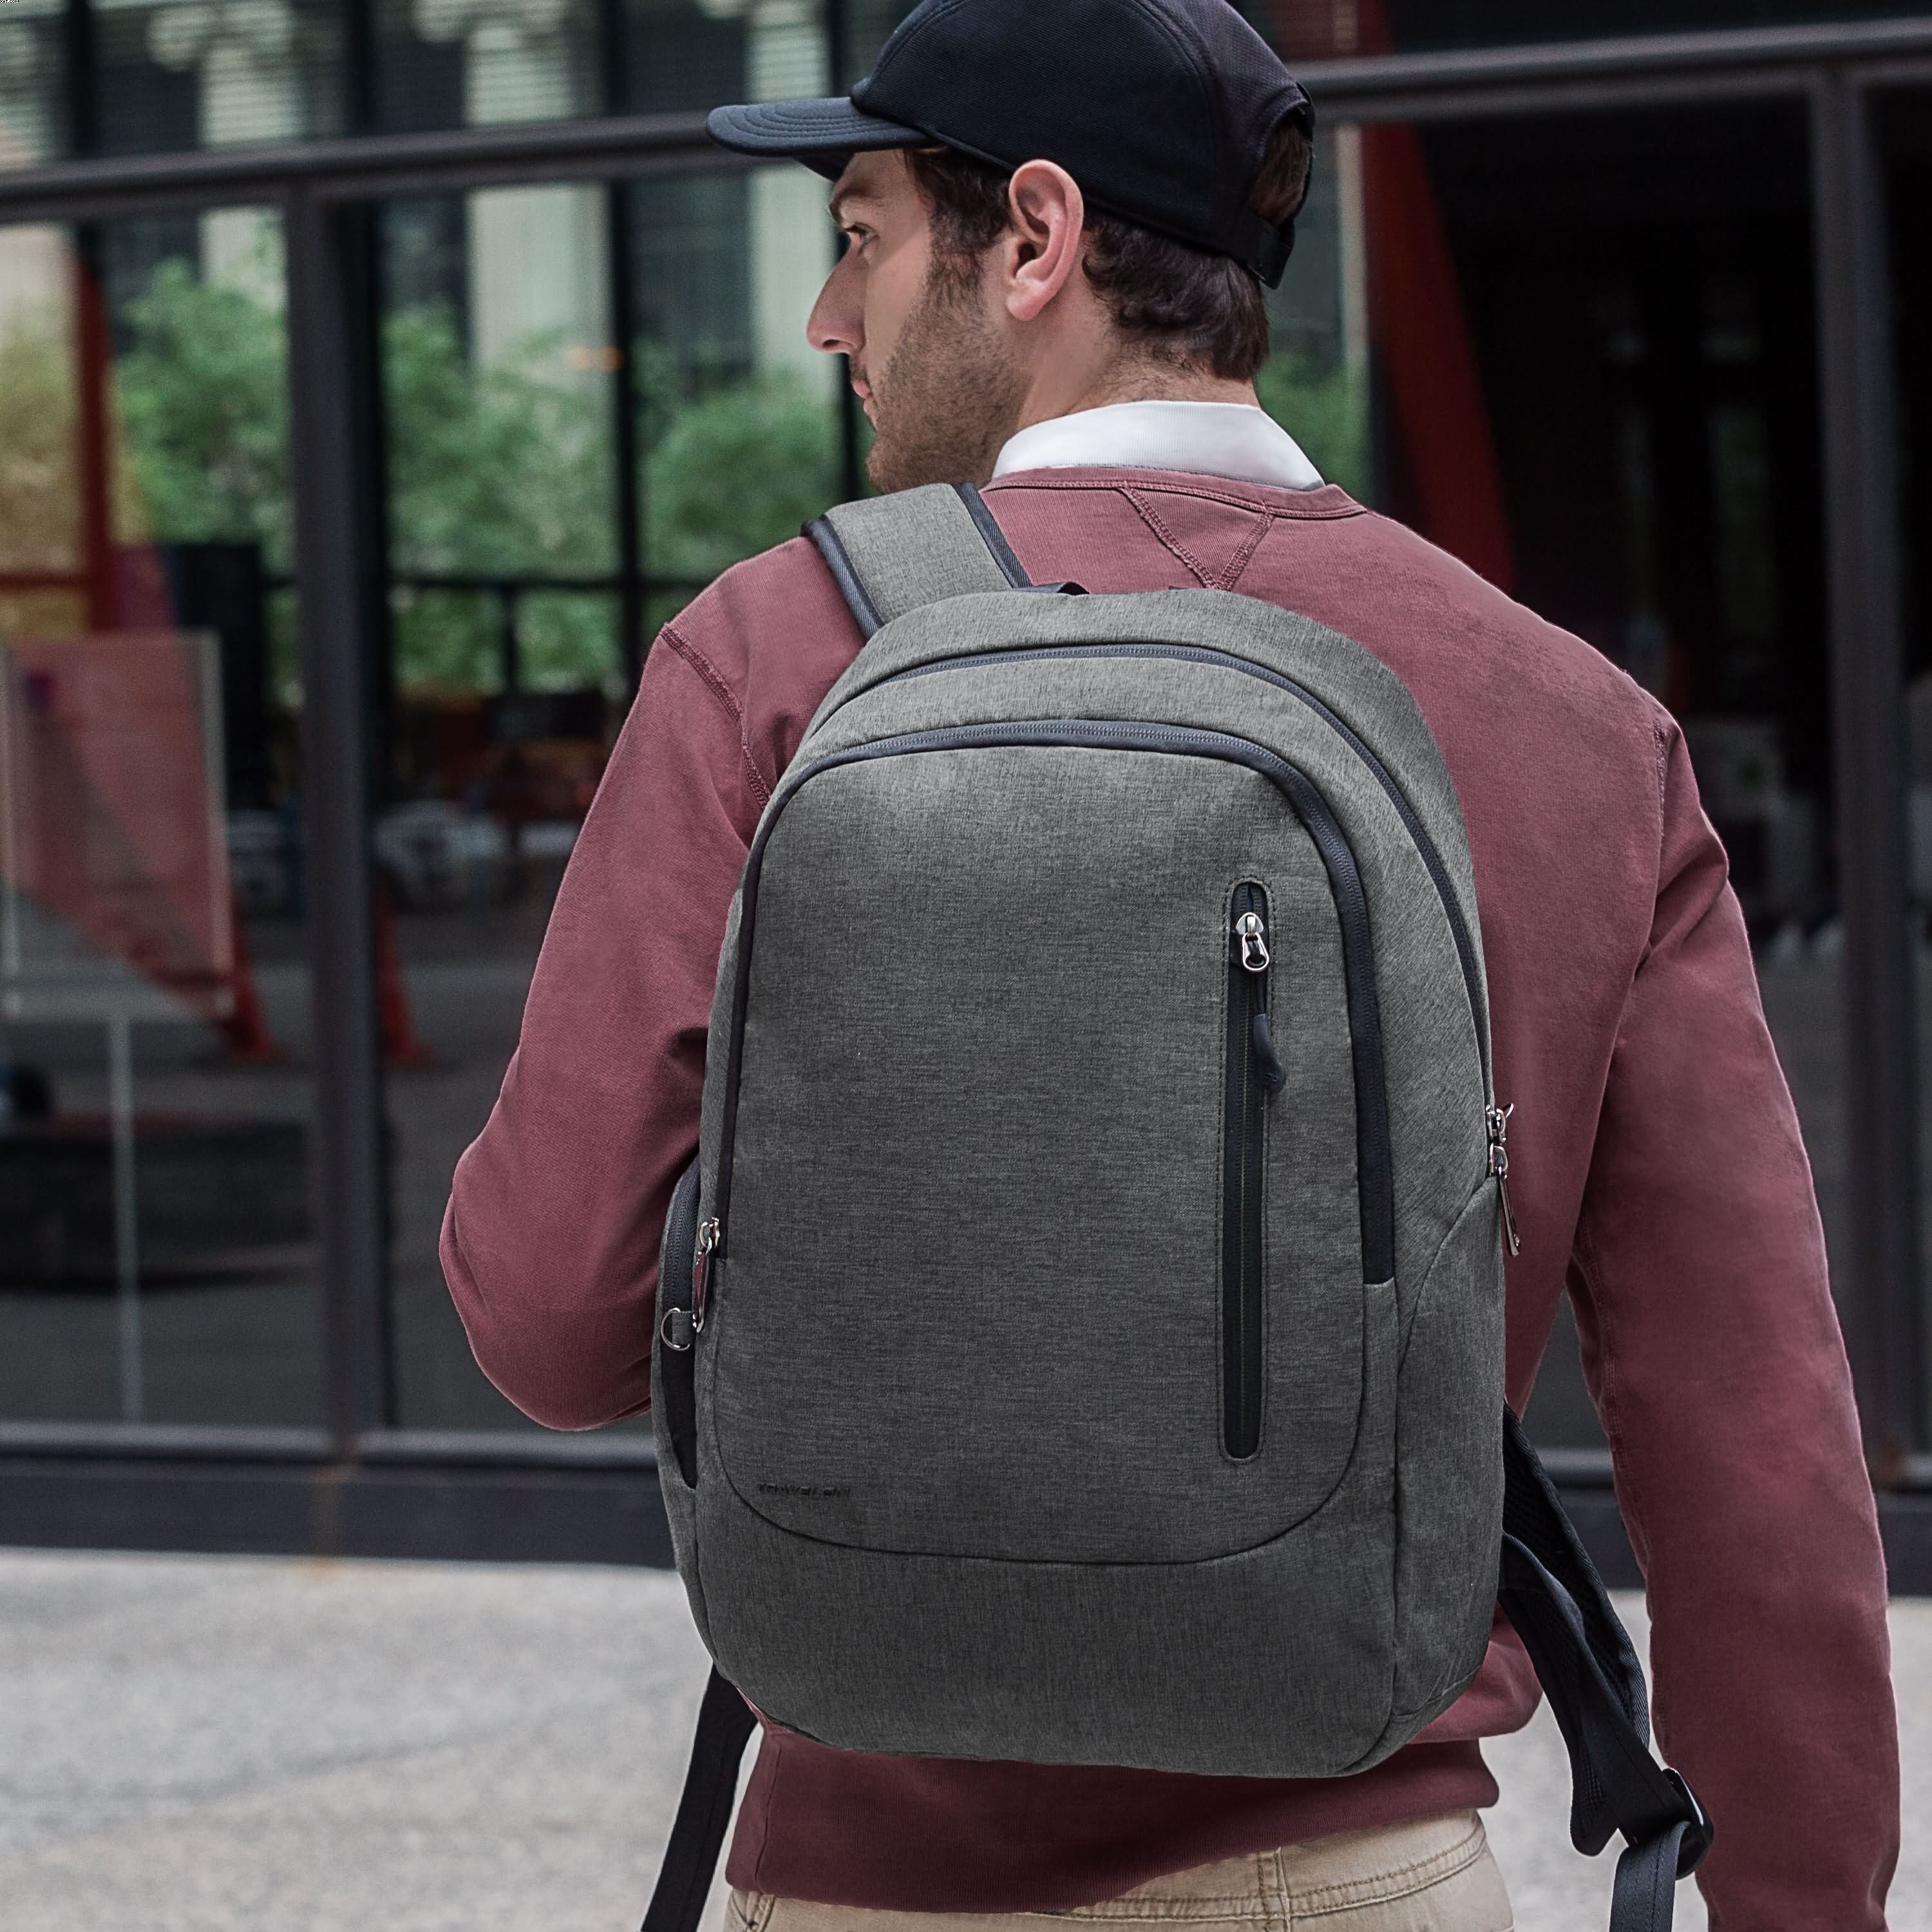 Anti-Theft Urban® Backpack